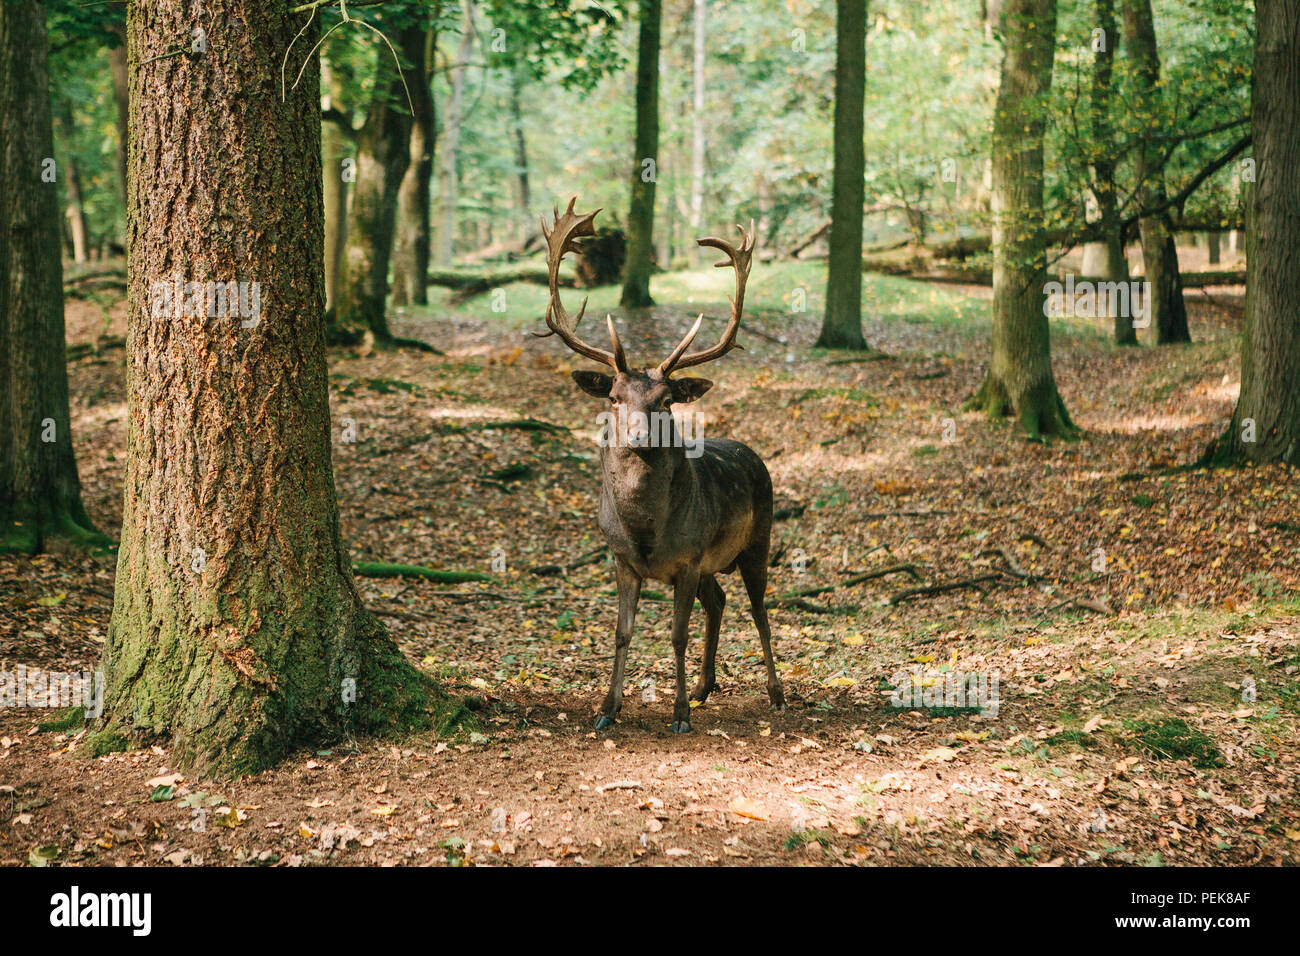 A beautiful wild deer with horns in the autumn forest among the trees - Stock Image